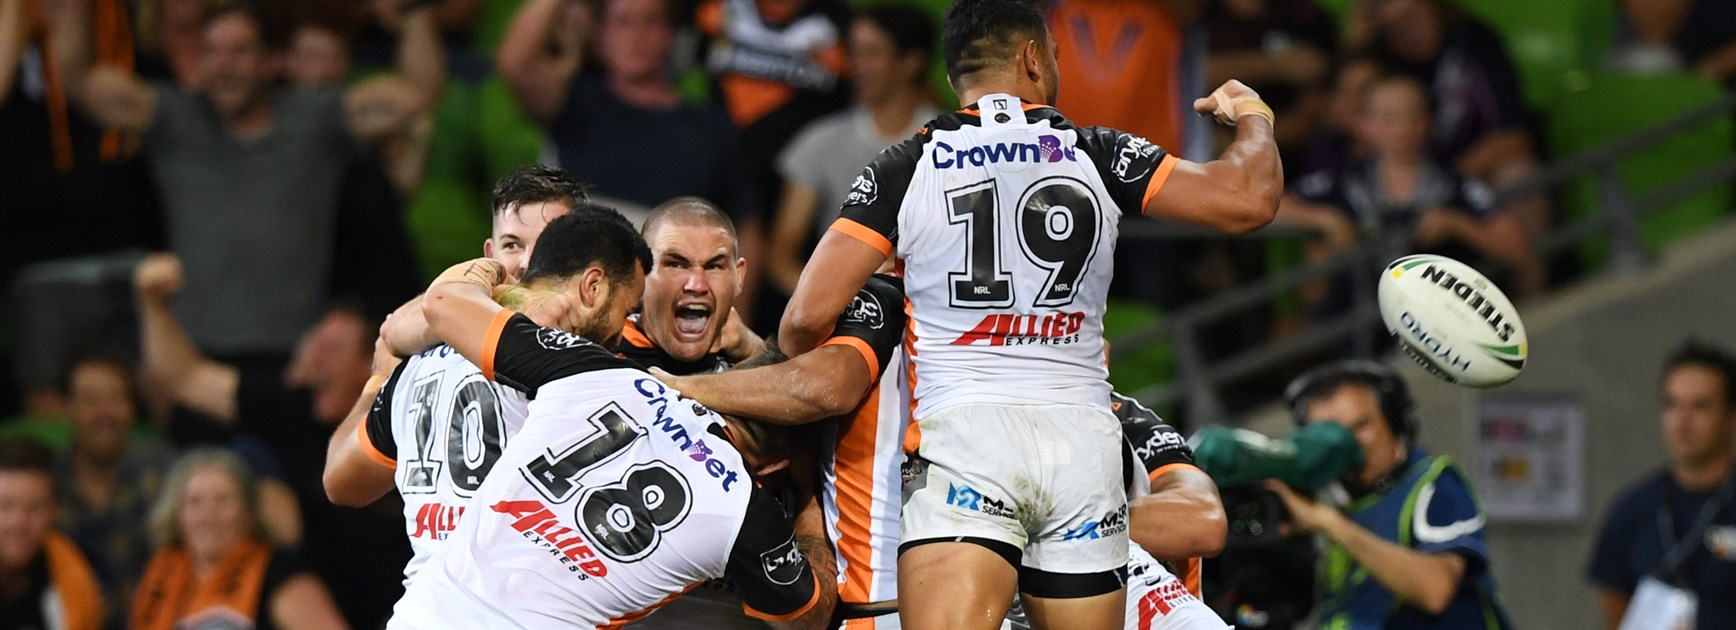 Tigers players celebrate wildly after beating the Storm.